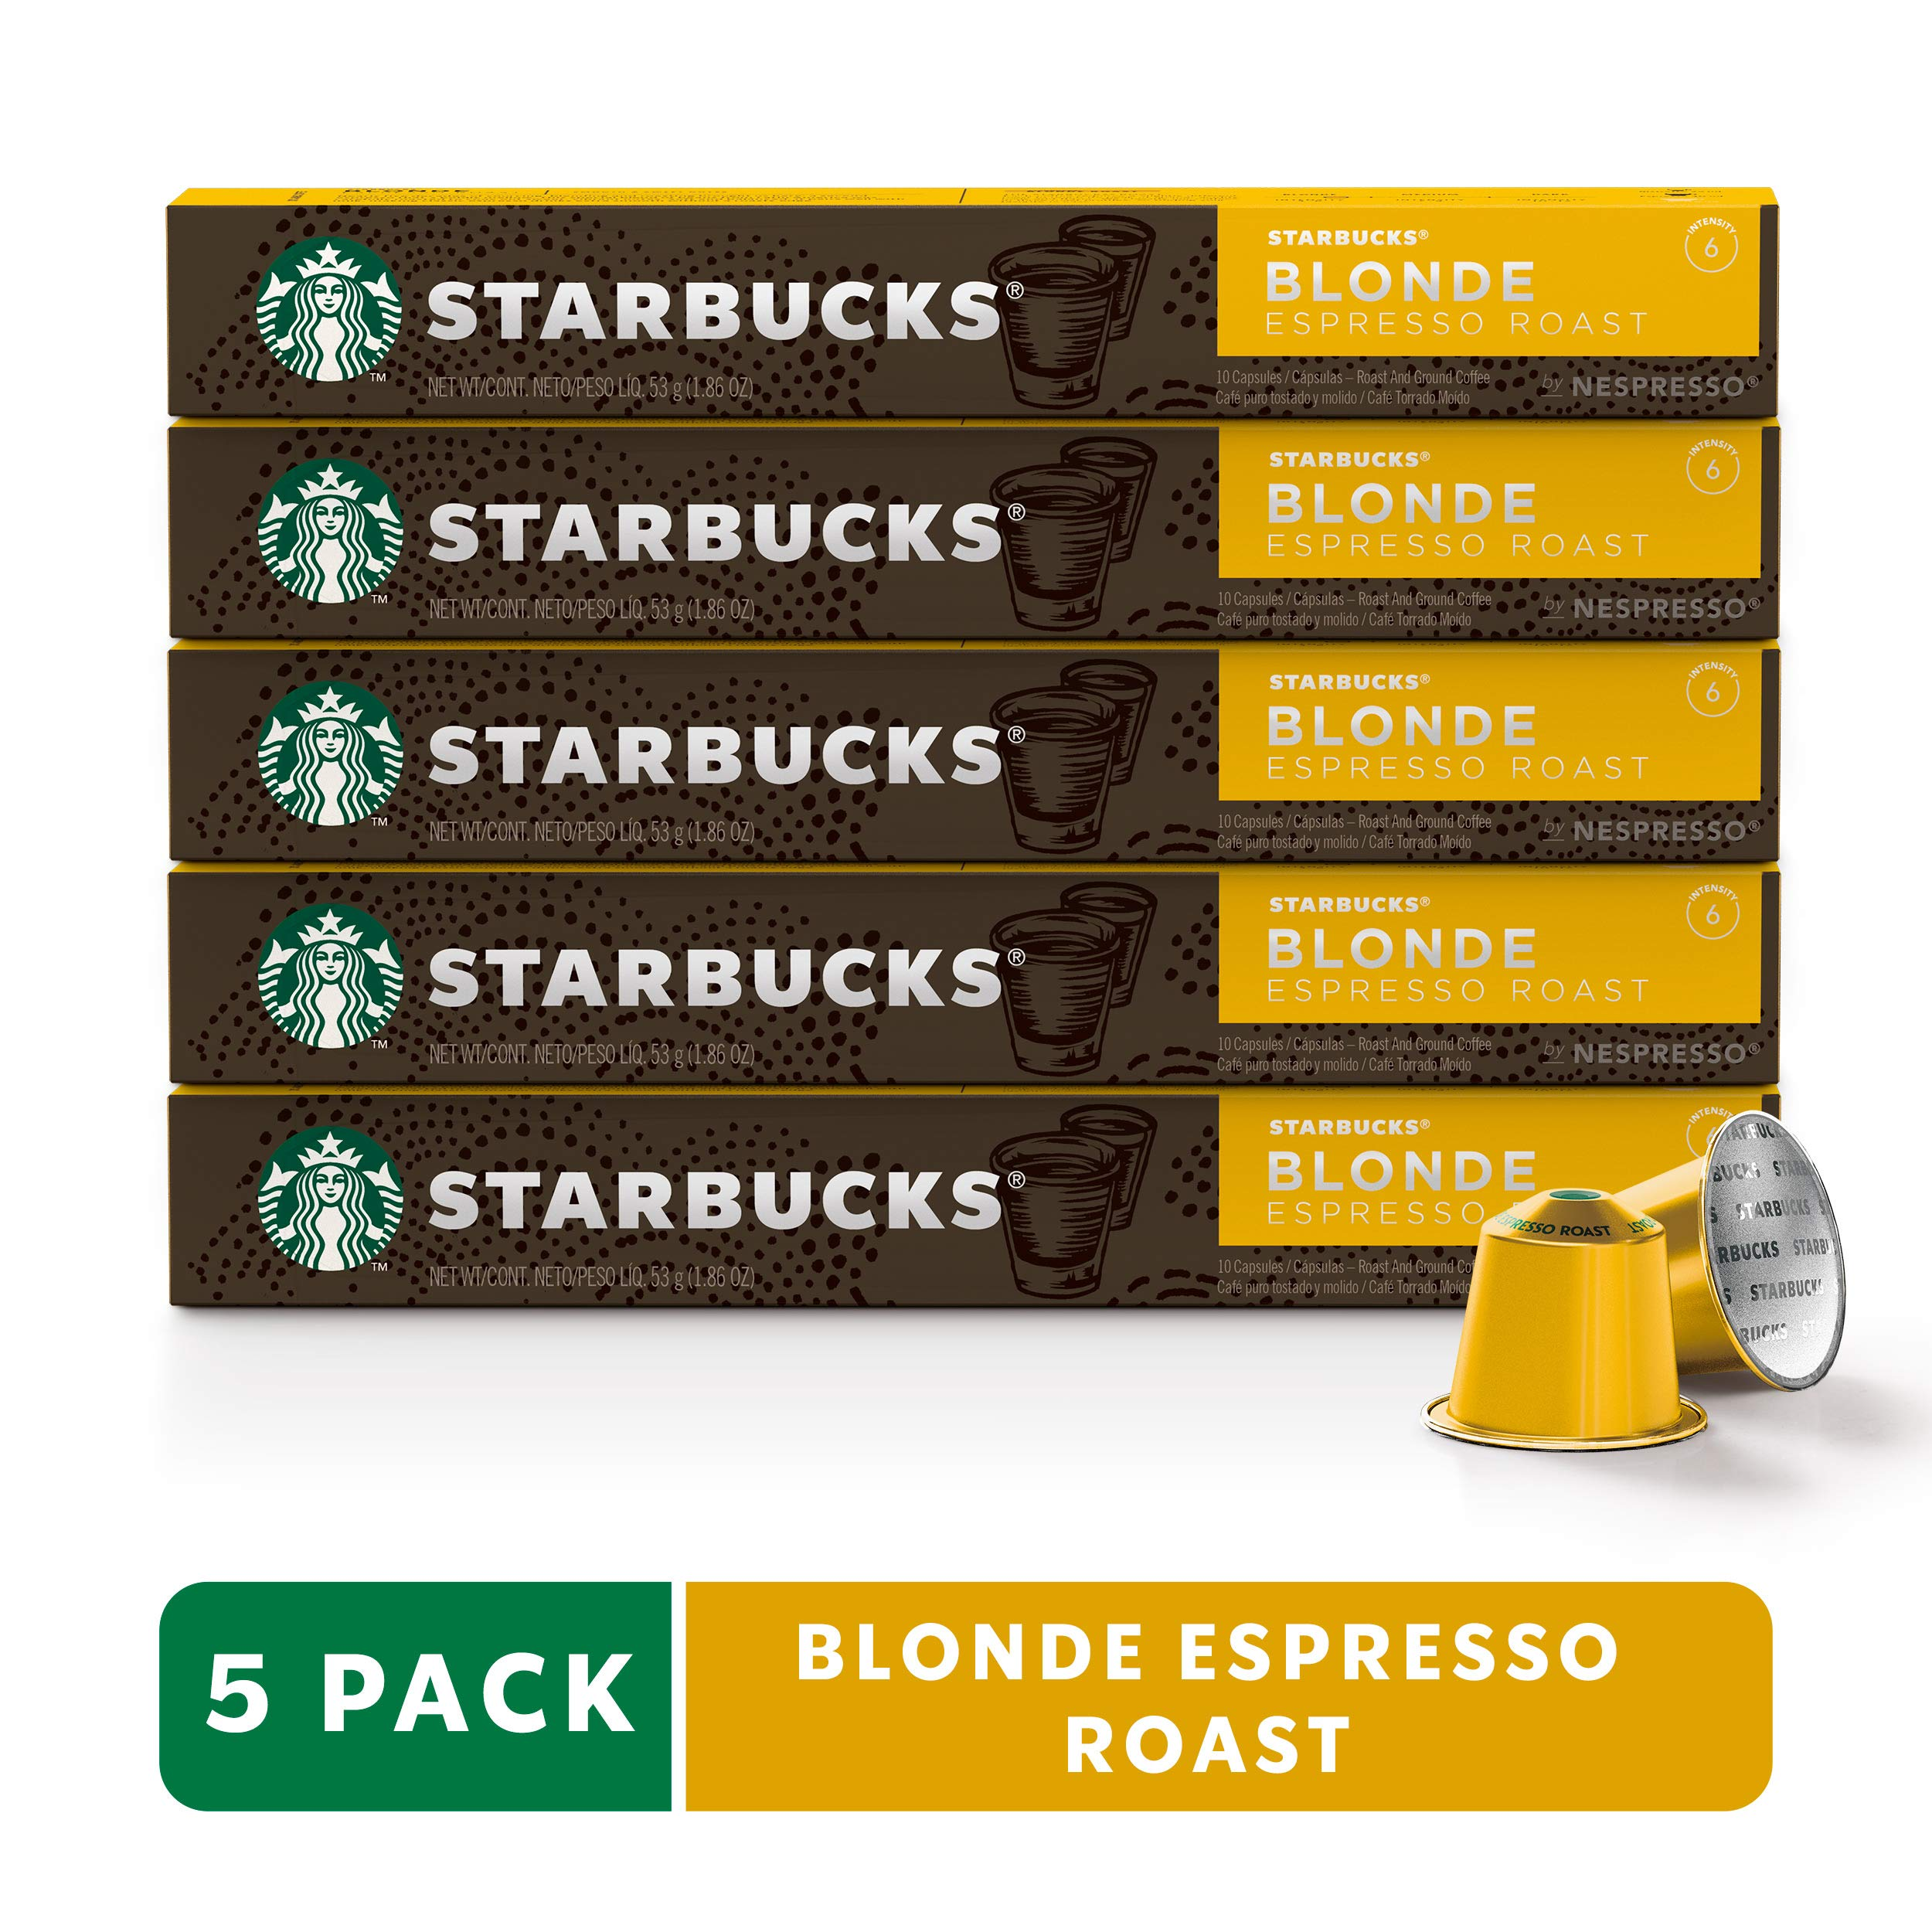 Starbucks by Nespresso, Blonde Roast Espresso (50-count single serve capsules, compatible with Nespresso Original Line System) by Starbucks for Nespresso (Image #1)